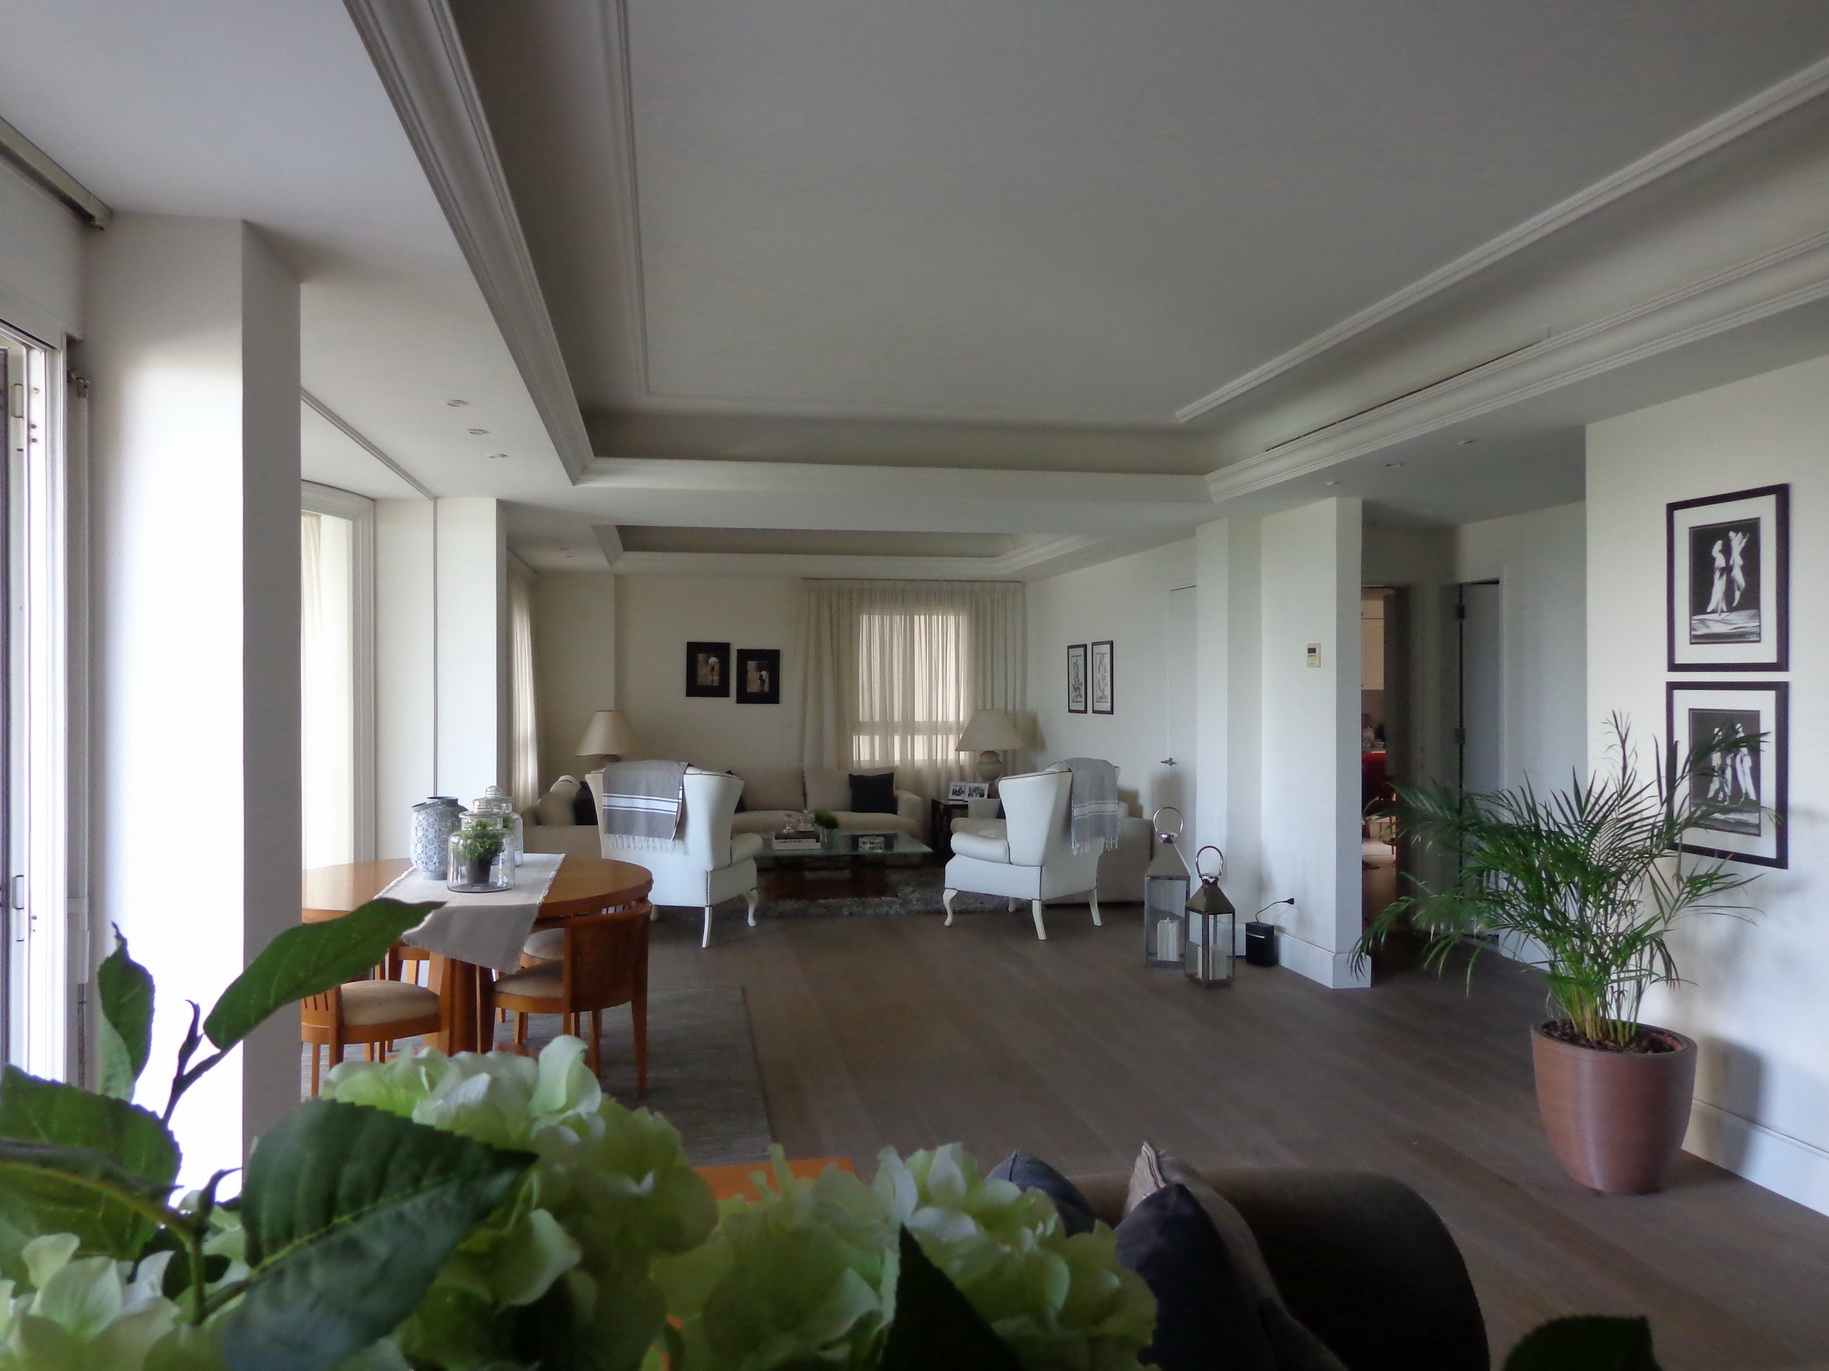 apartment for Sale, Ras Beirut, 1,300,000 USD